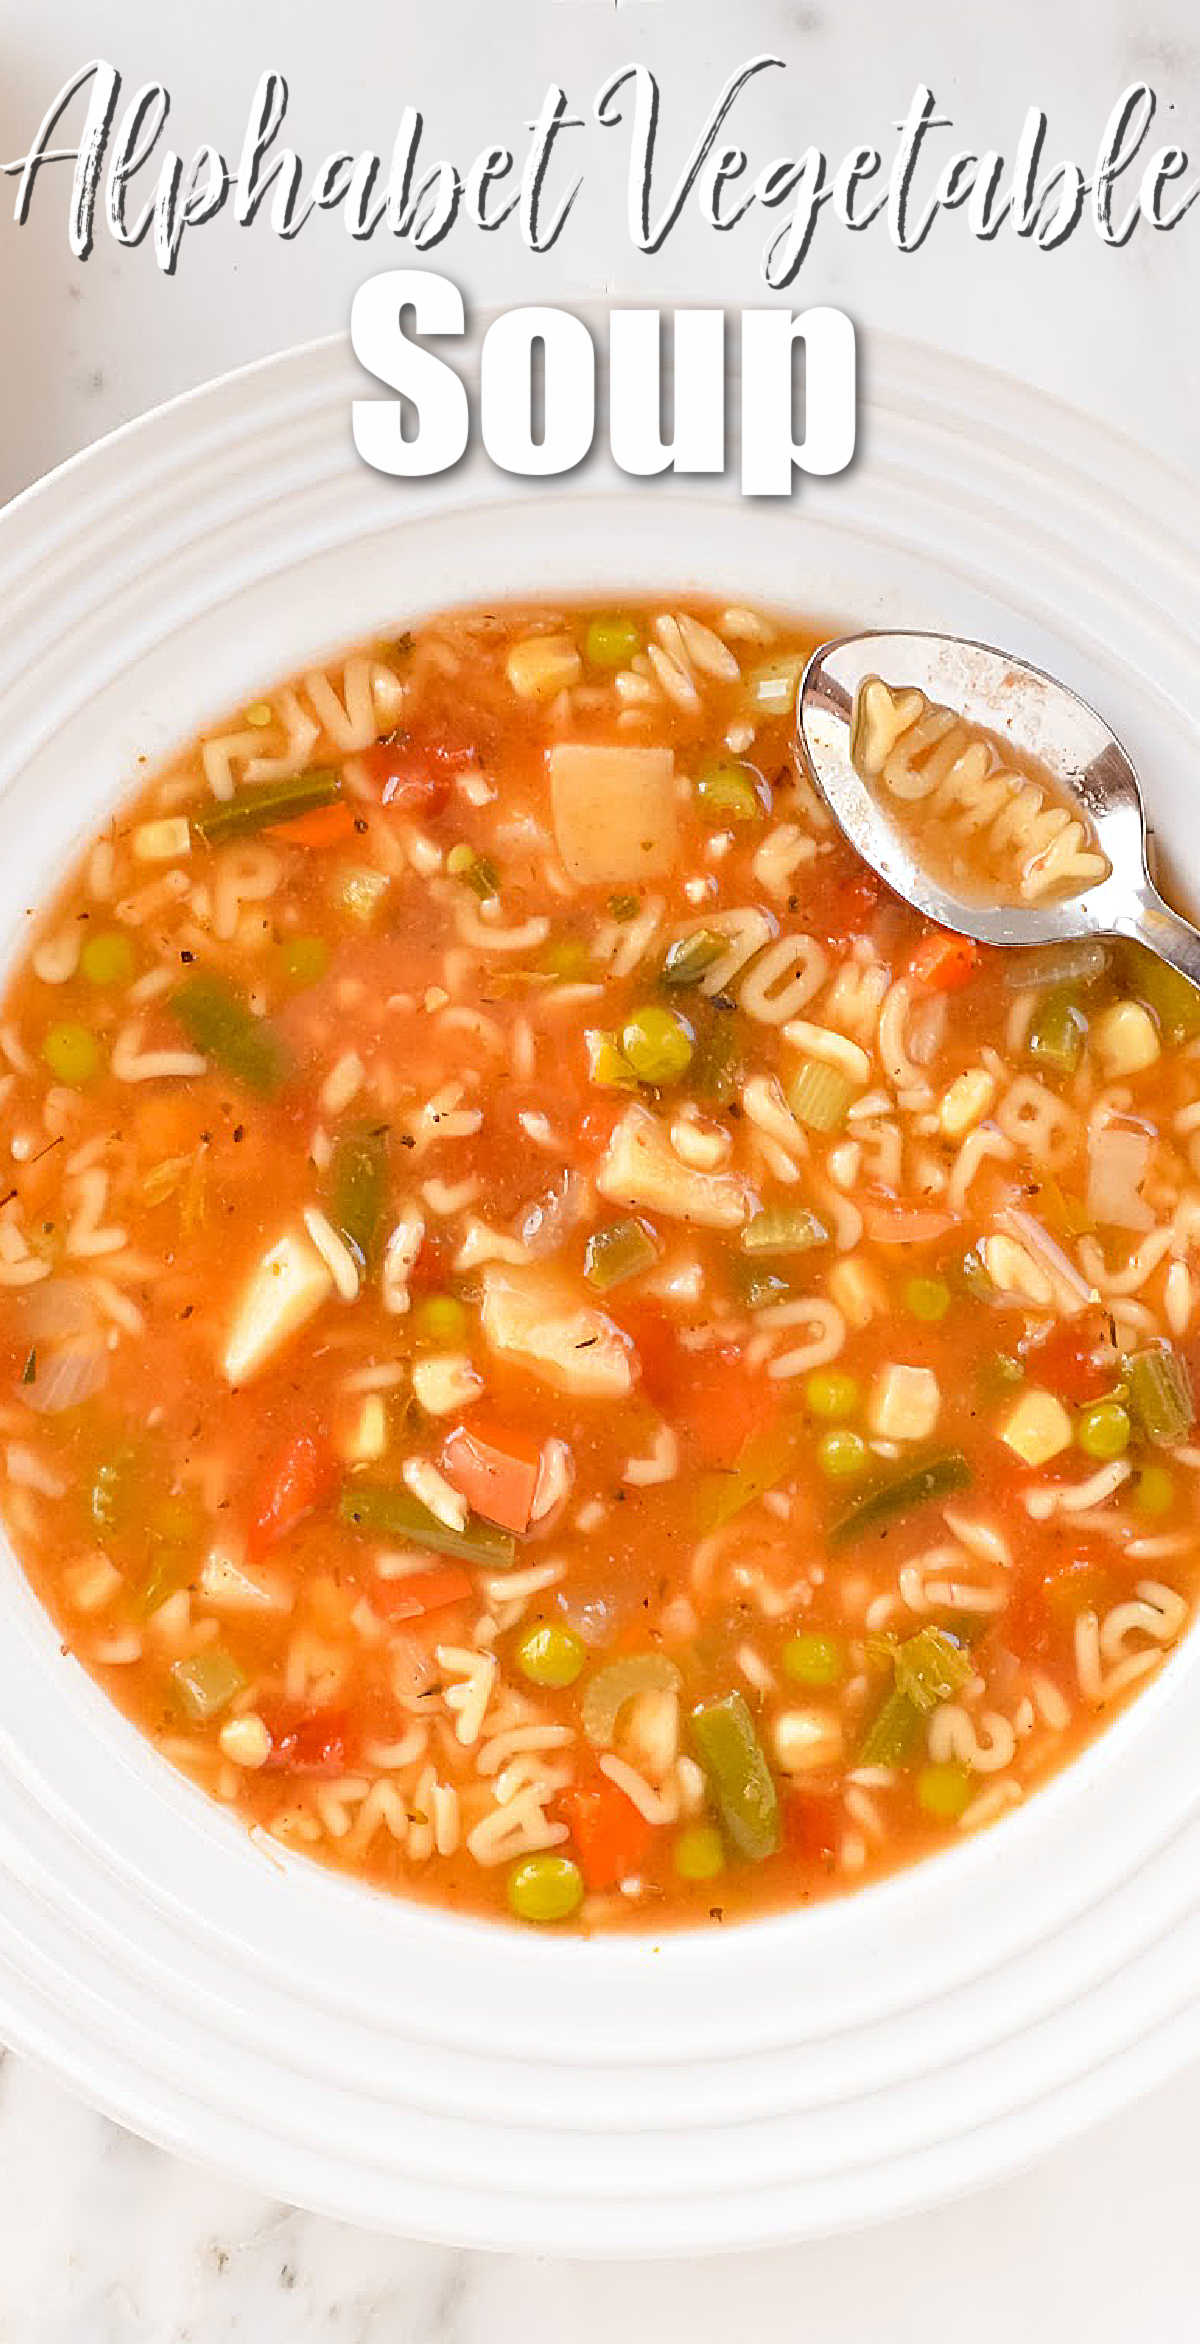 Alphabet Vegetable Soup homemade in a white soup bowl with white text at the top Alphabet Vegetable Soup.